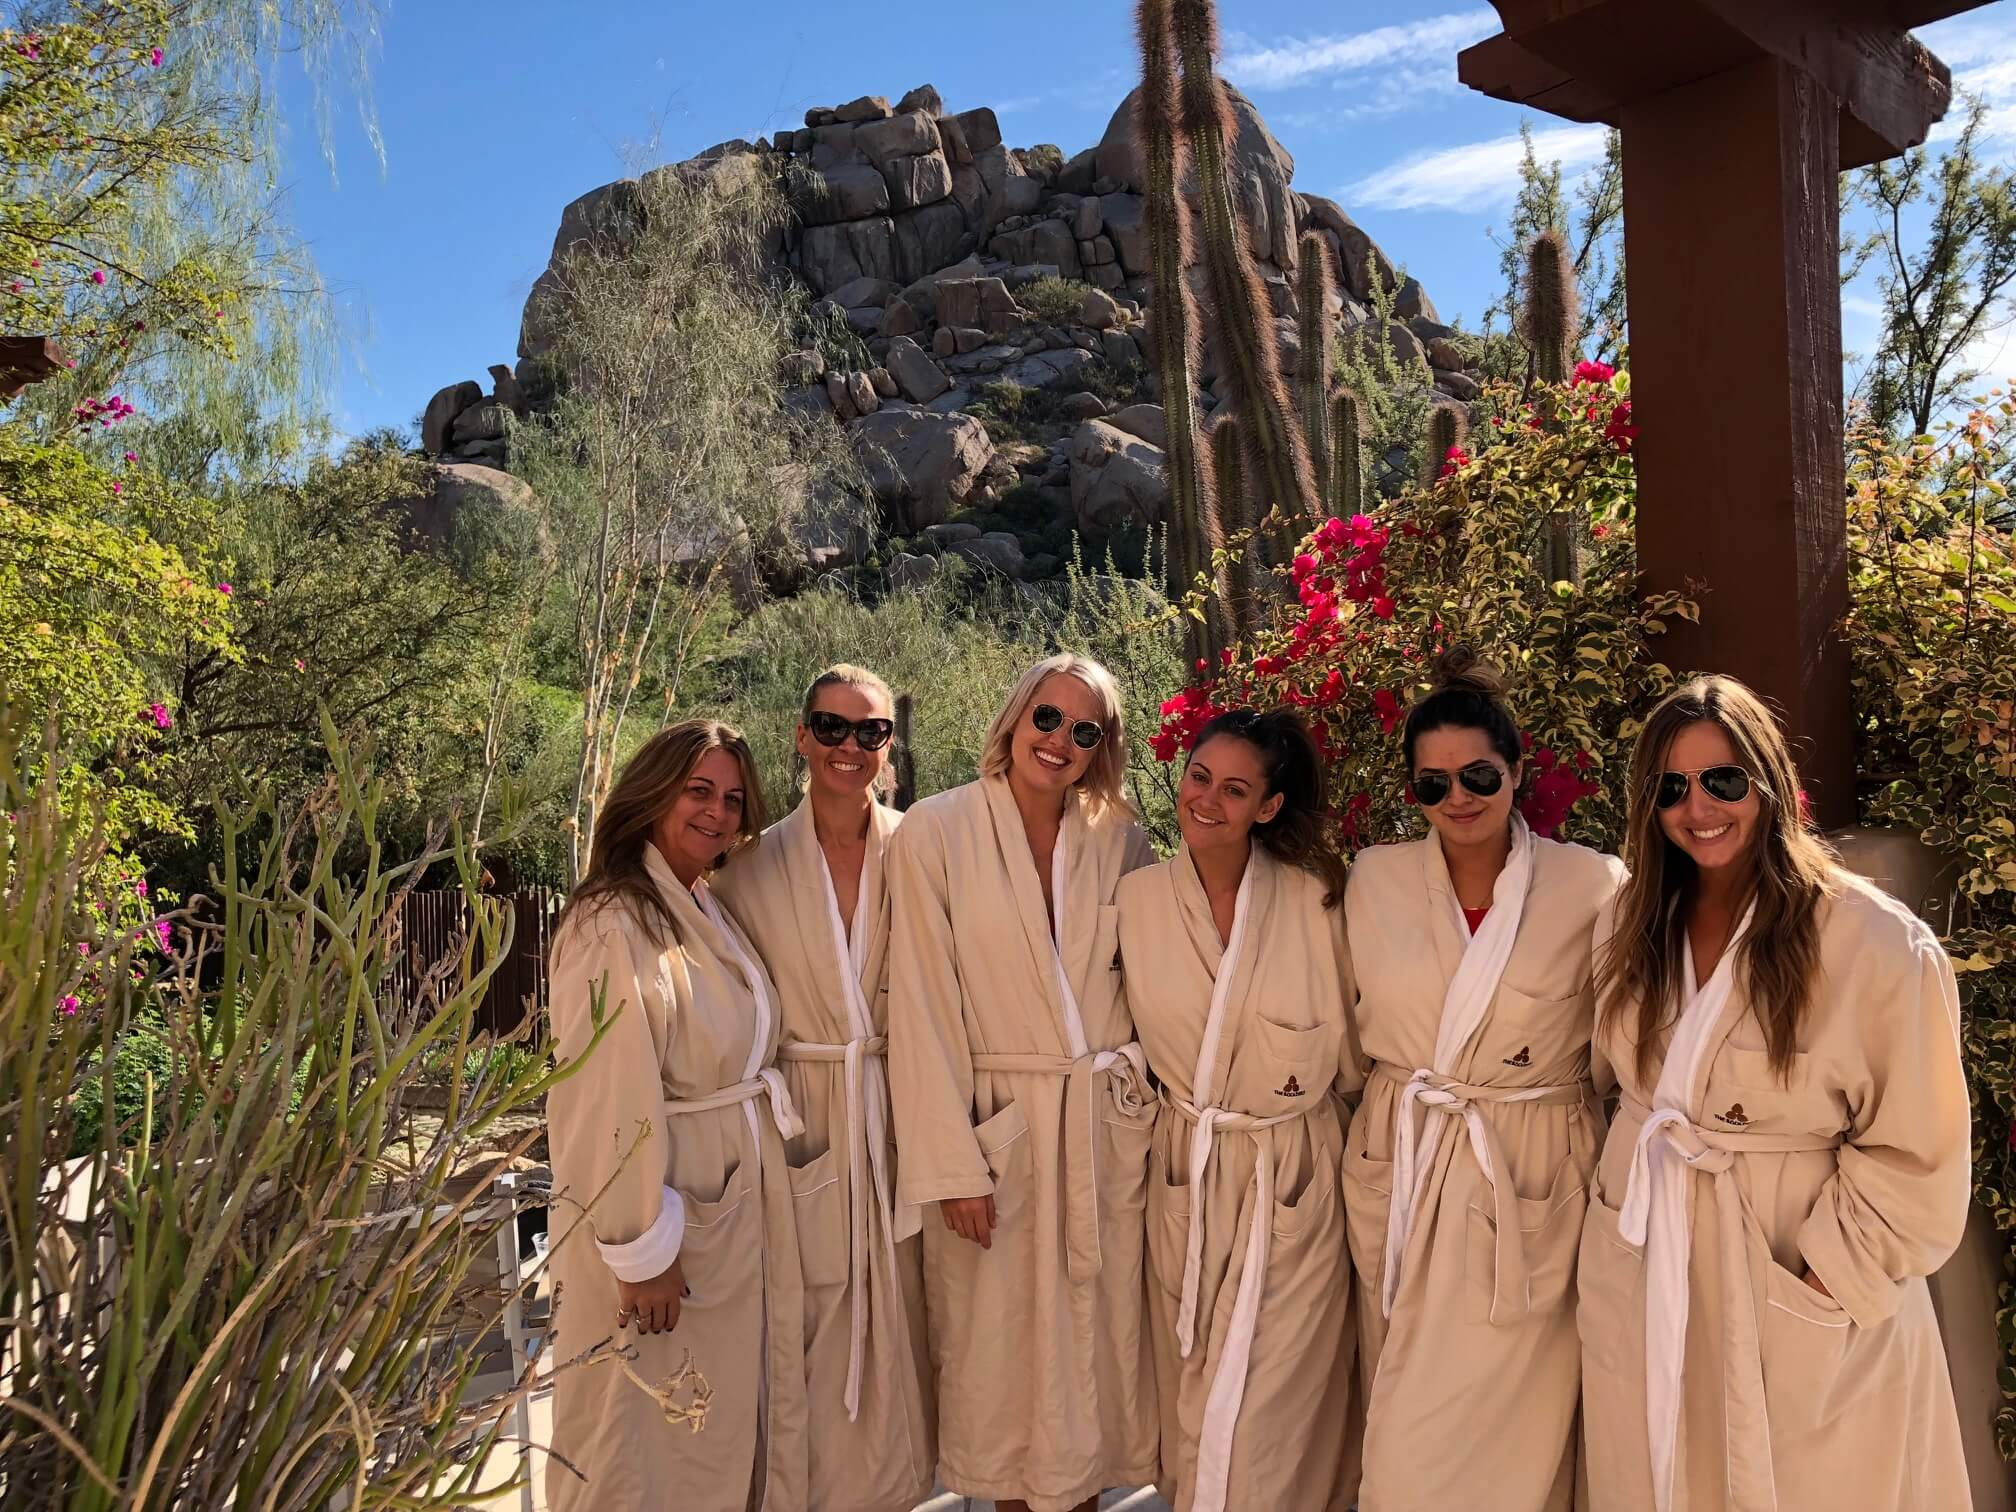 Spa day at Scottsdale bachelorette party